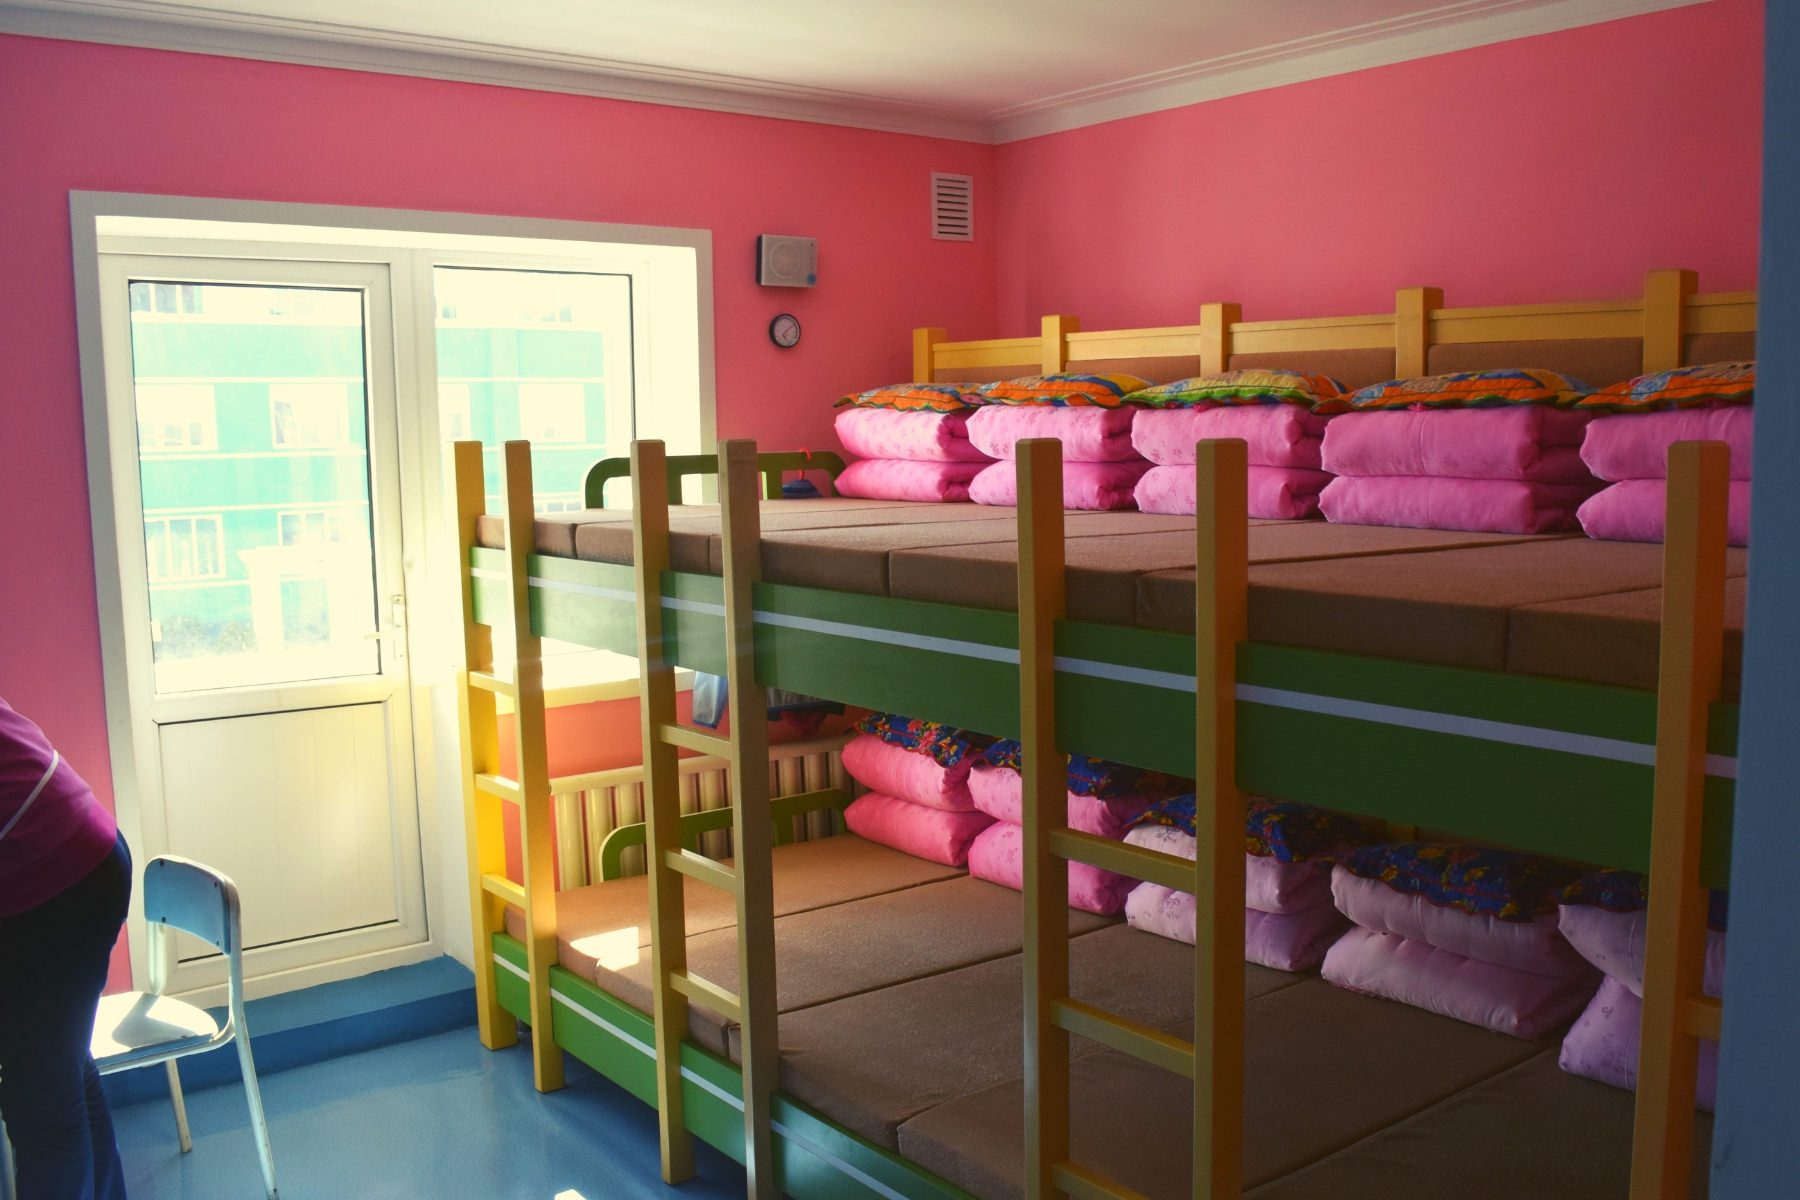 Dormitory at an orphanage in North Korea. Visit arranged by KTG